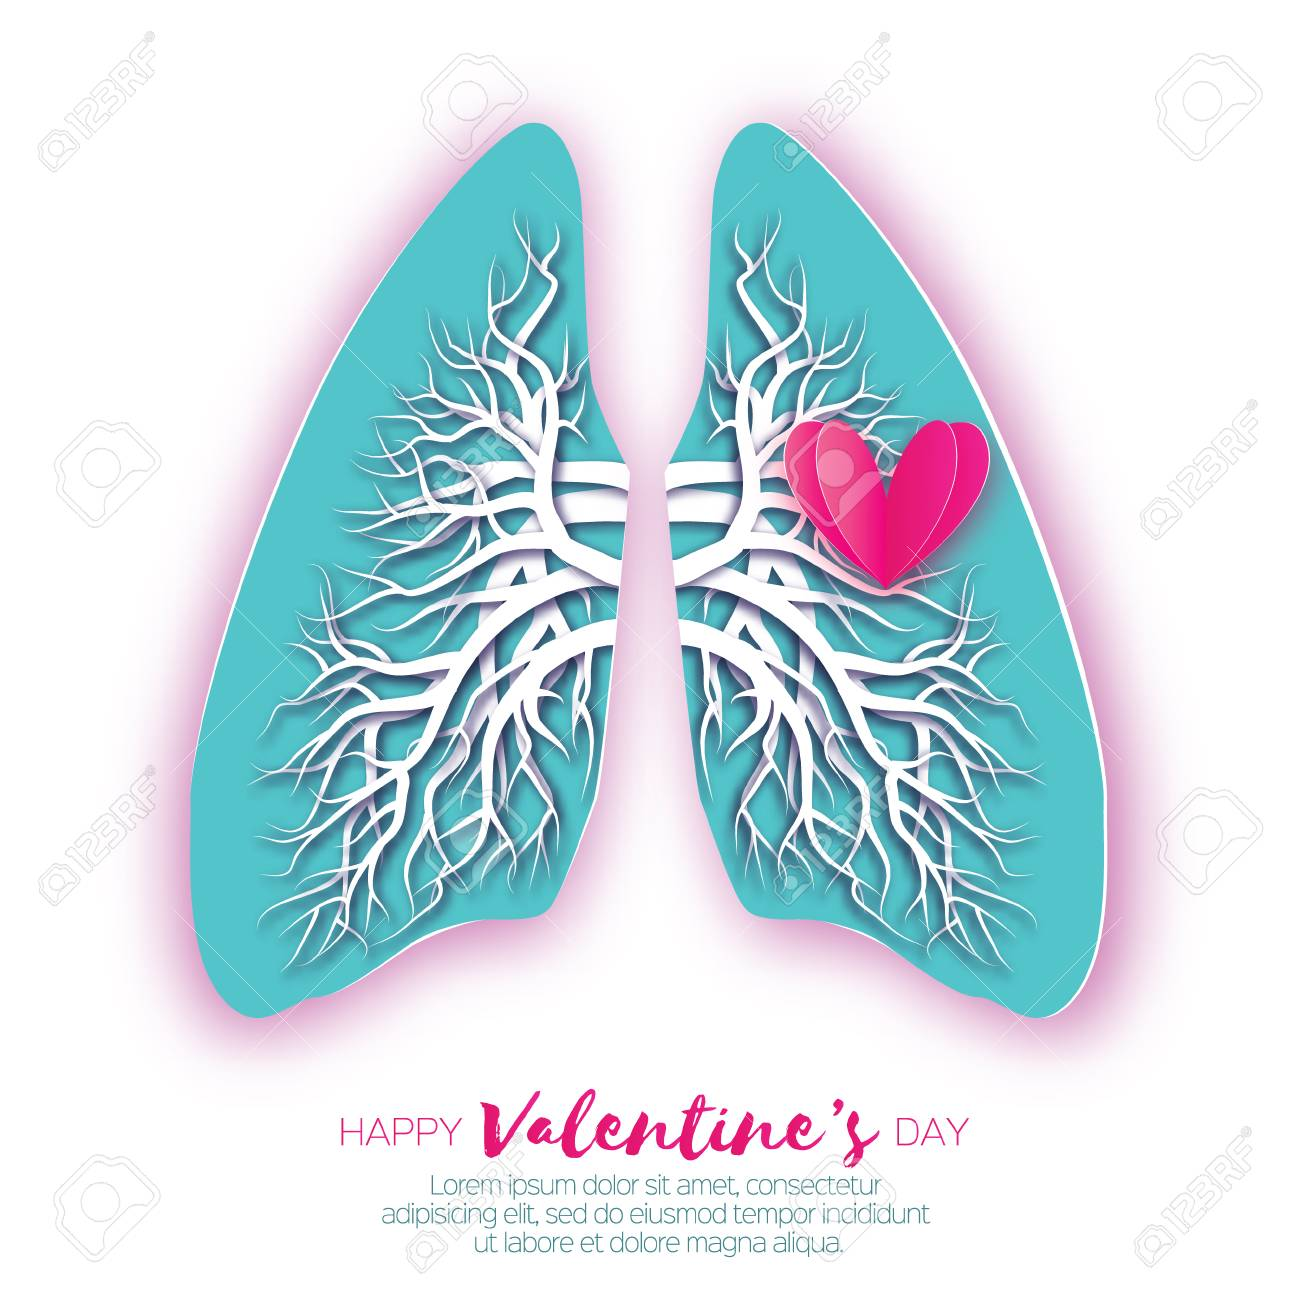 Lungs Origami Love Heart Blue Paper Cut Human Lungs Anatomy